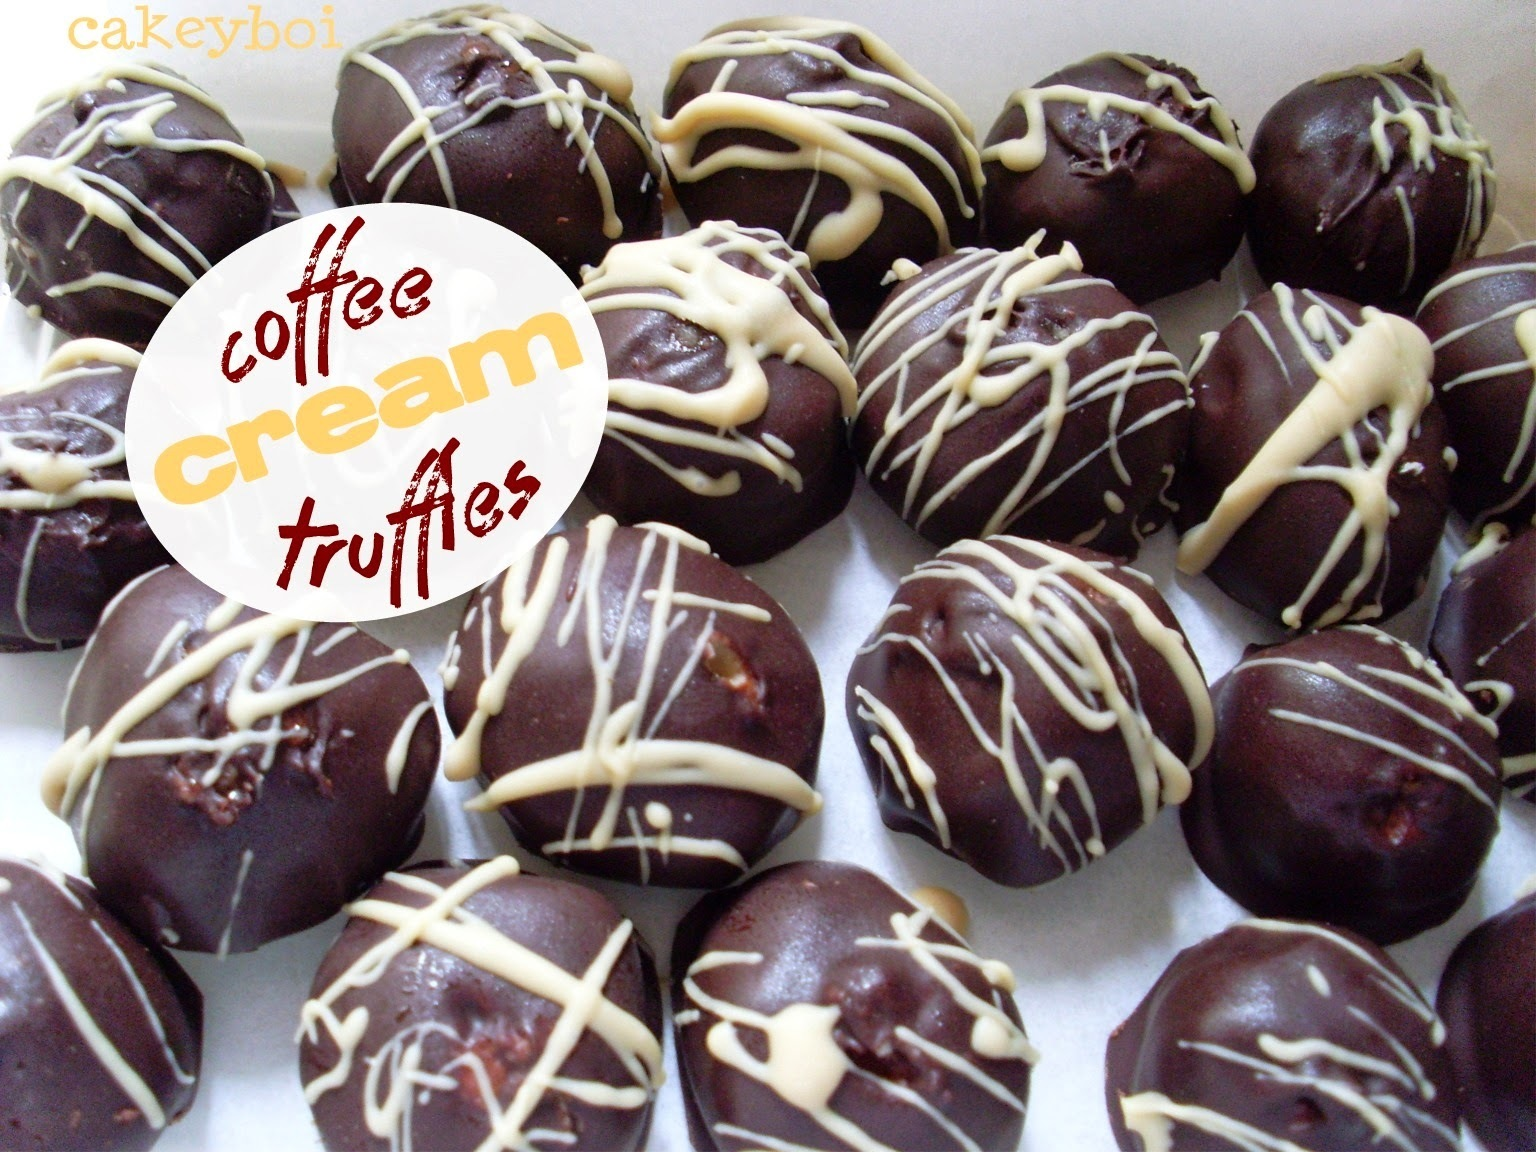 Coffee Cream Truffles